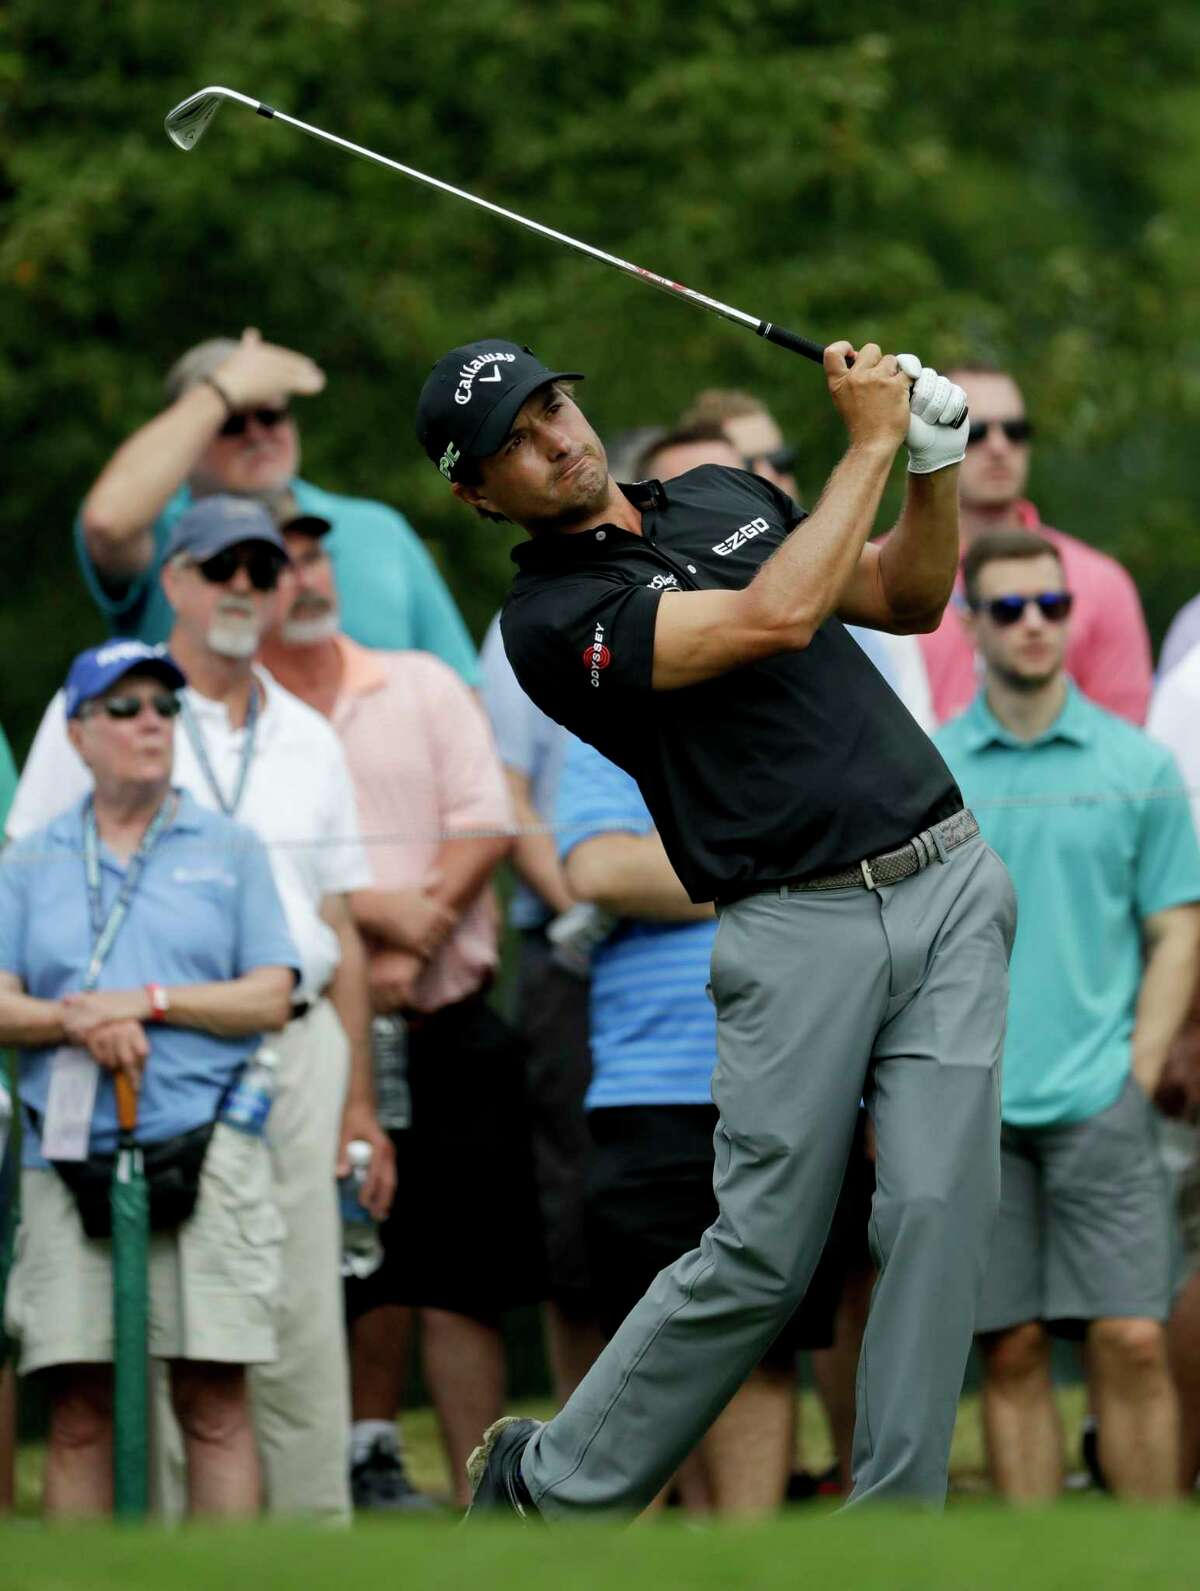 Kevin Kisner watches his tee shot on the 13th hole during the second round of the PGA Championship golf tournament at the Quail Hollow Club Friday, Aug. 11, 2017, in Charlotte, N.C. (AP Photo/John Bazemore)